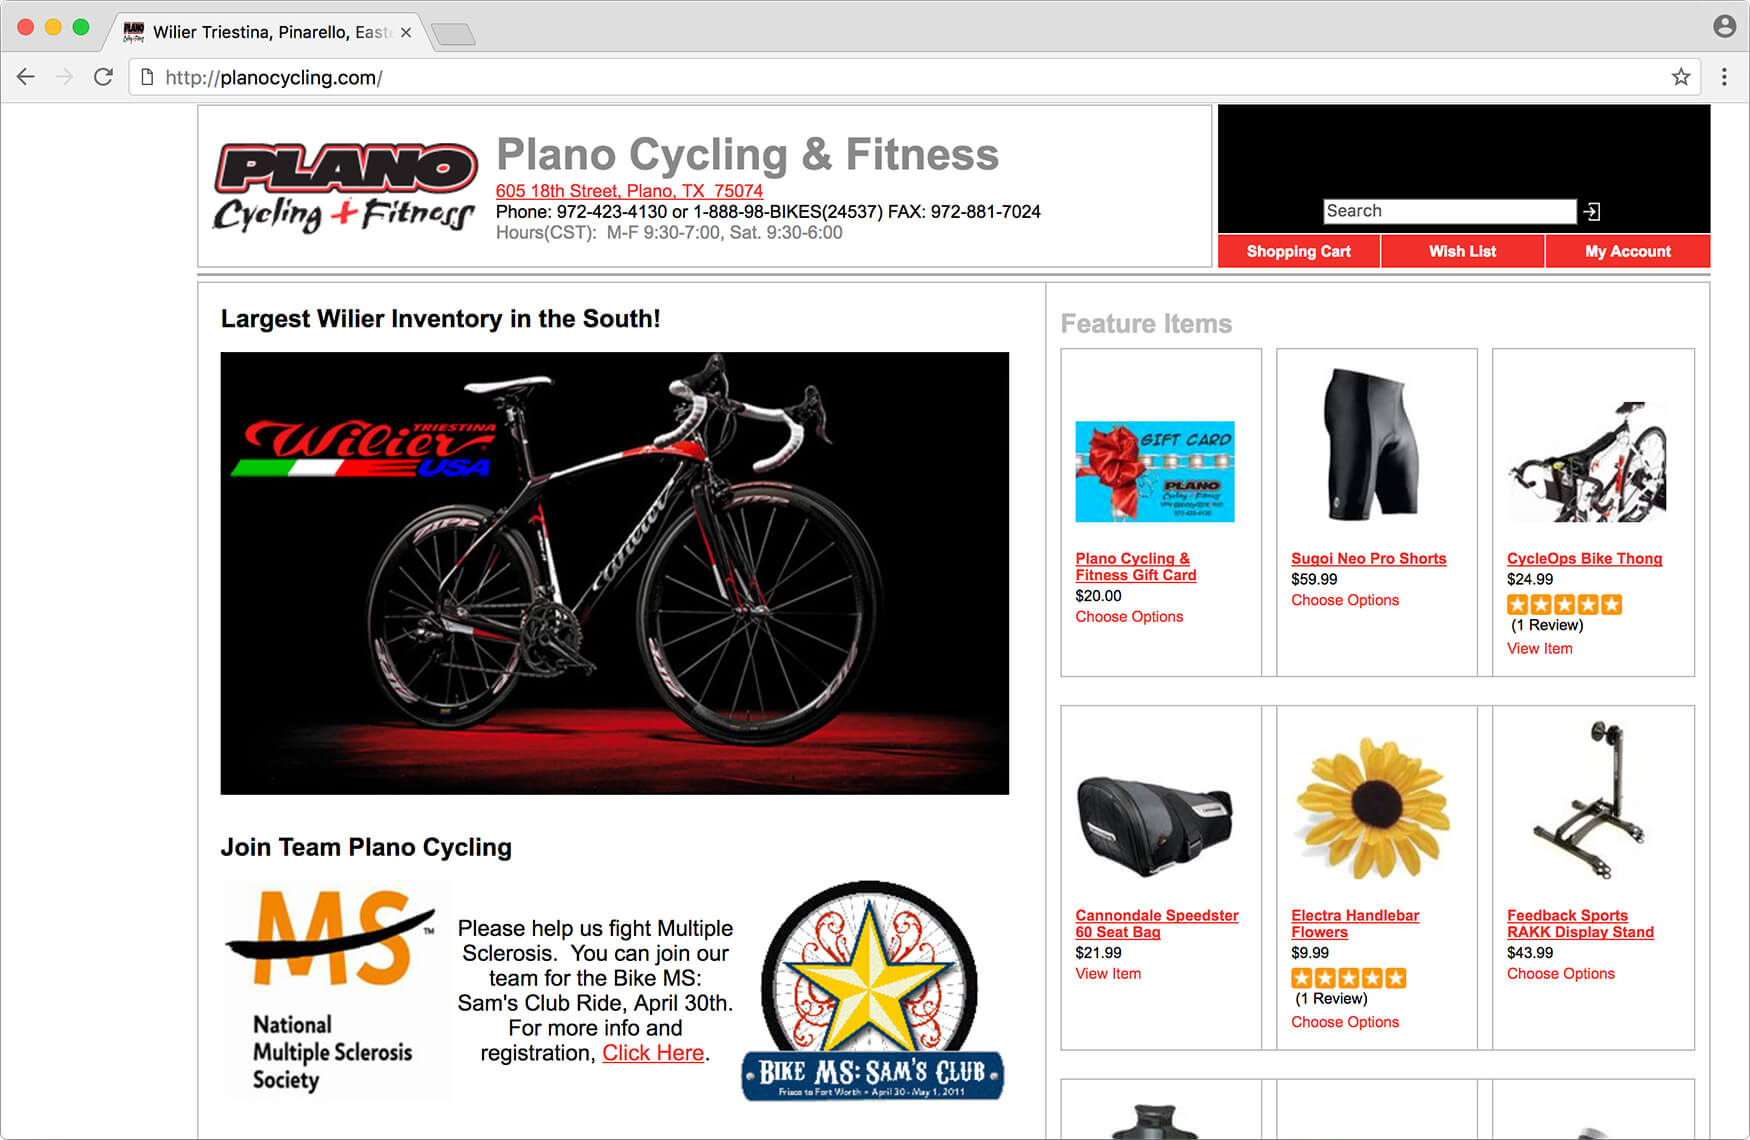 Screenshot of Plano Cycling homepage in January 2013